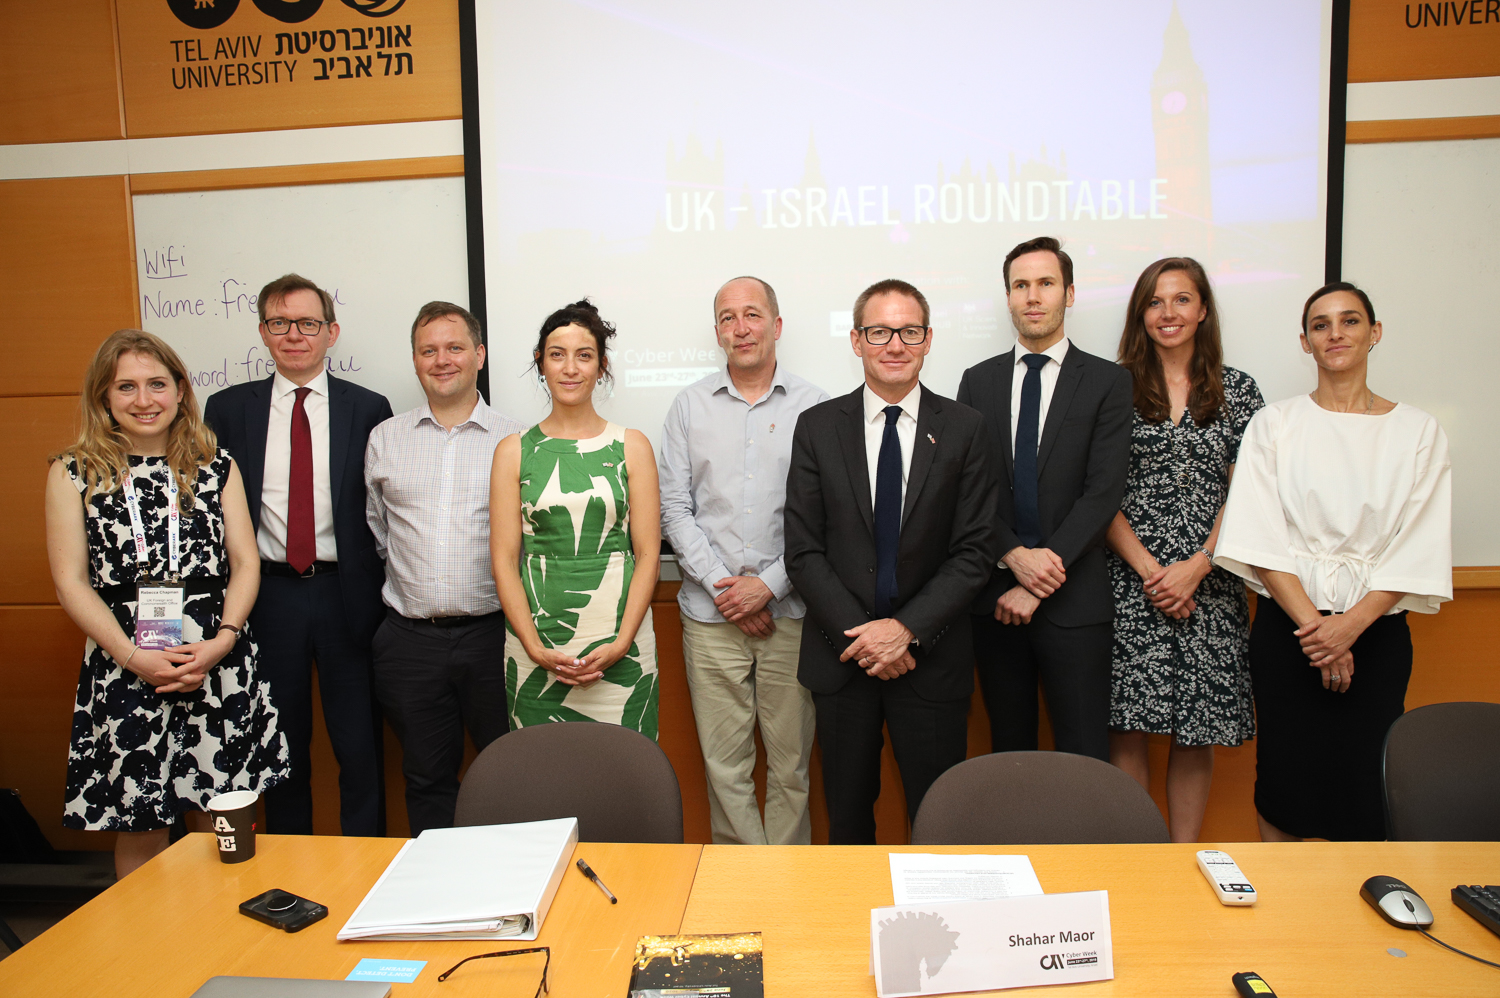 Showing image of CW 2019 - UK-Israel Roundtable